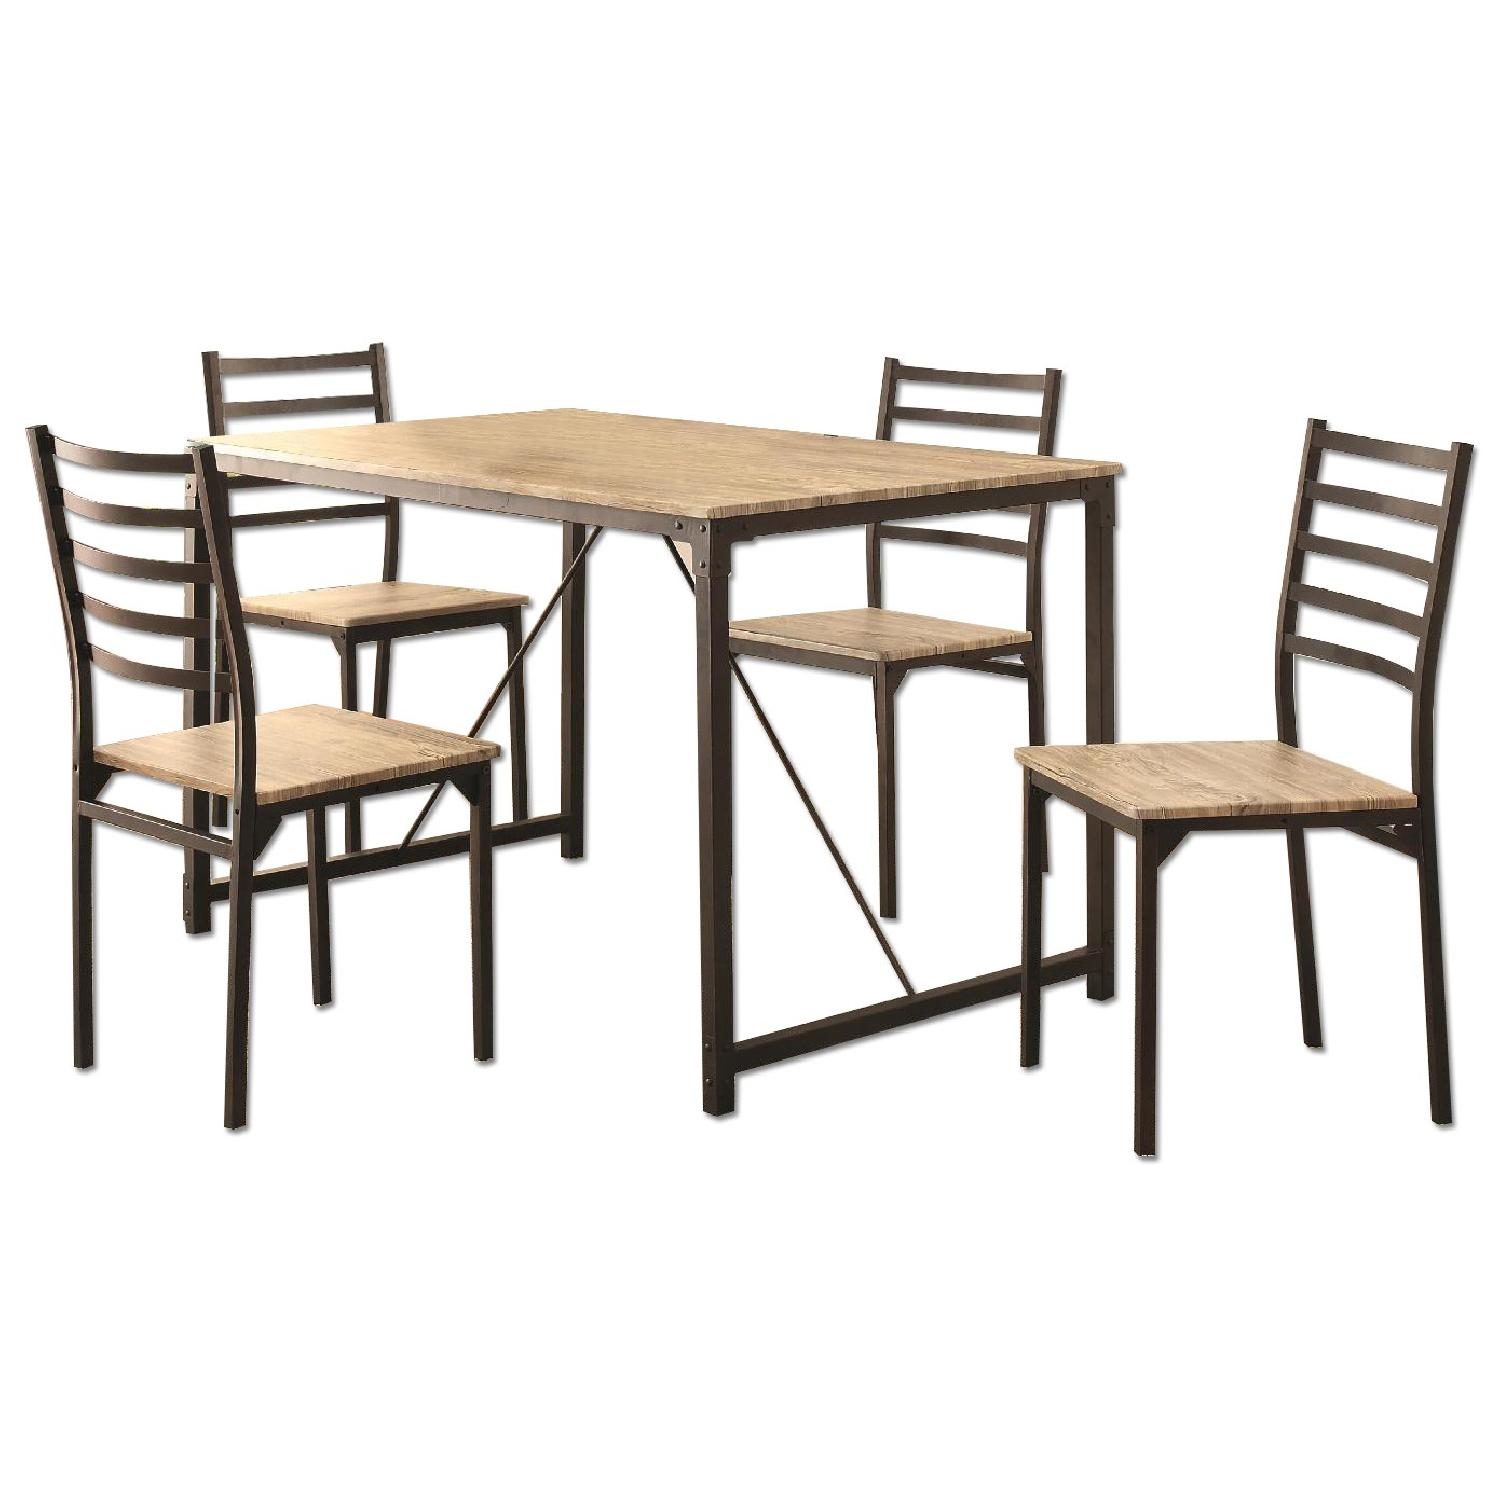 Industrial Design Inspired 5 Piece Rustic Dining Set - image-0